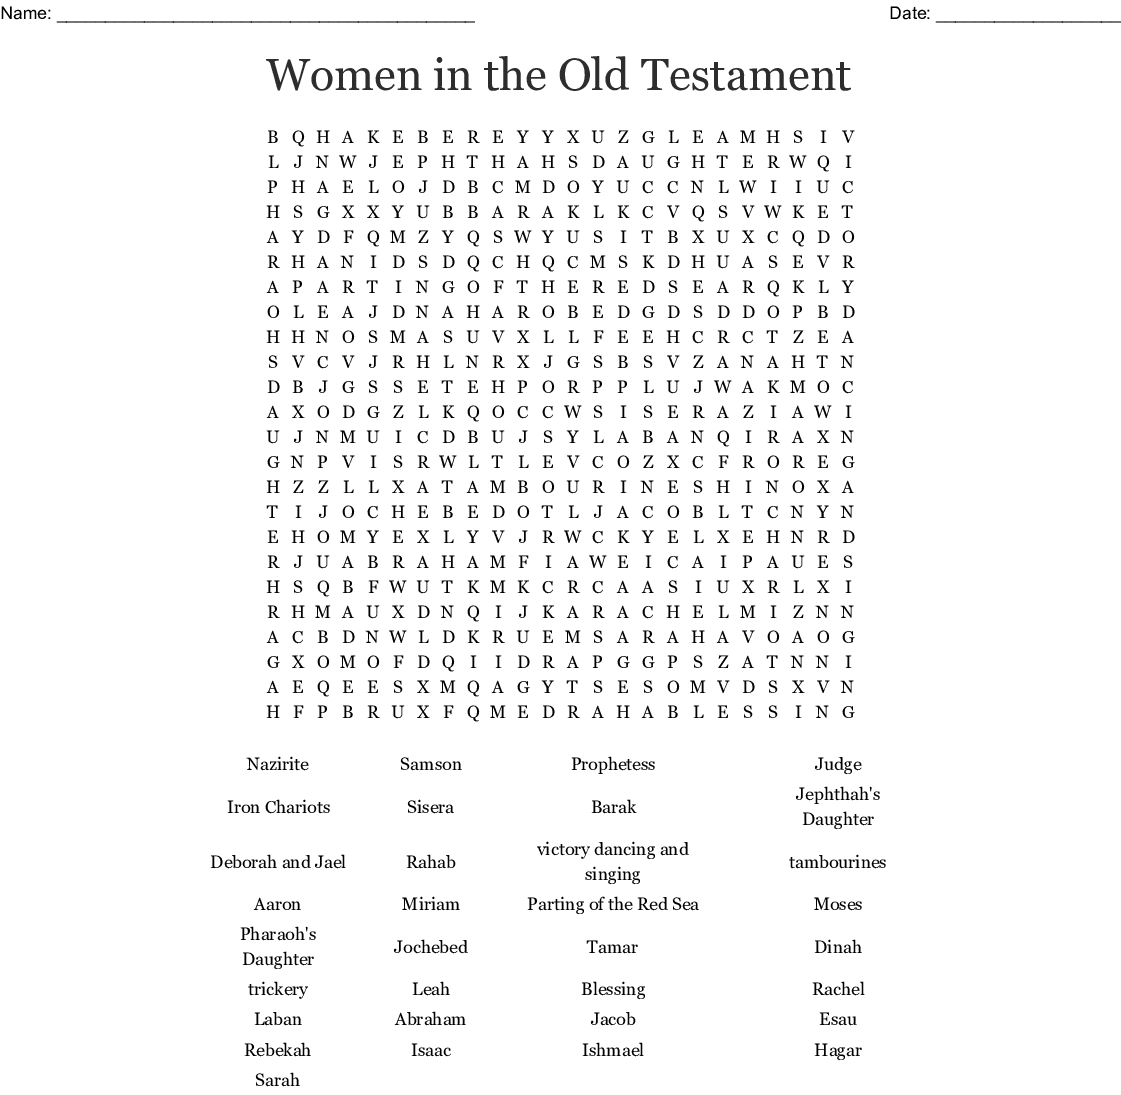 Women In The Old Testament Word Search